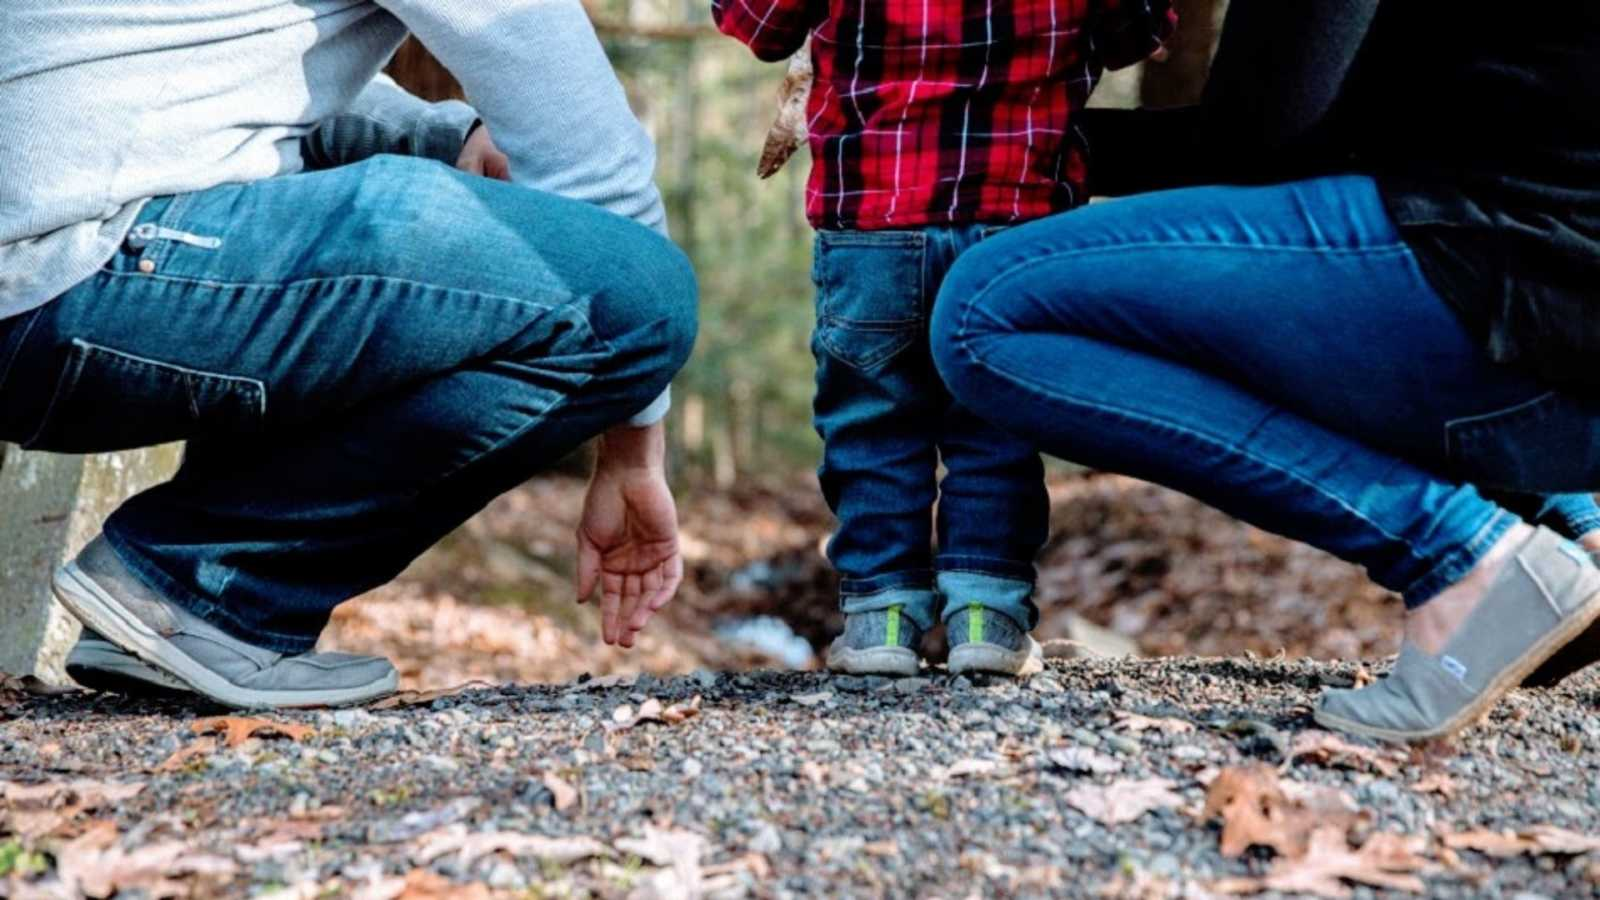 Parents kneel on the ground near a boy in a red plaid shirt